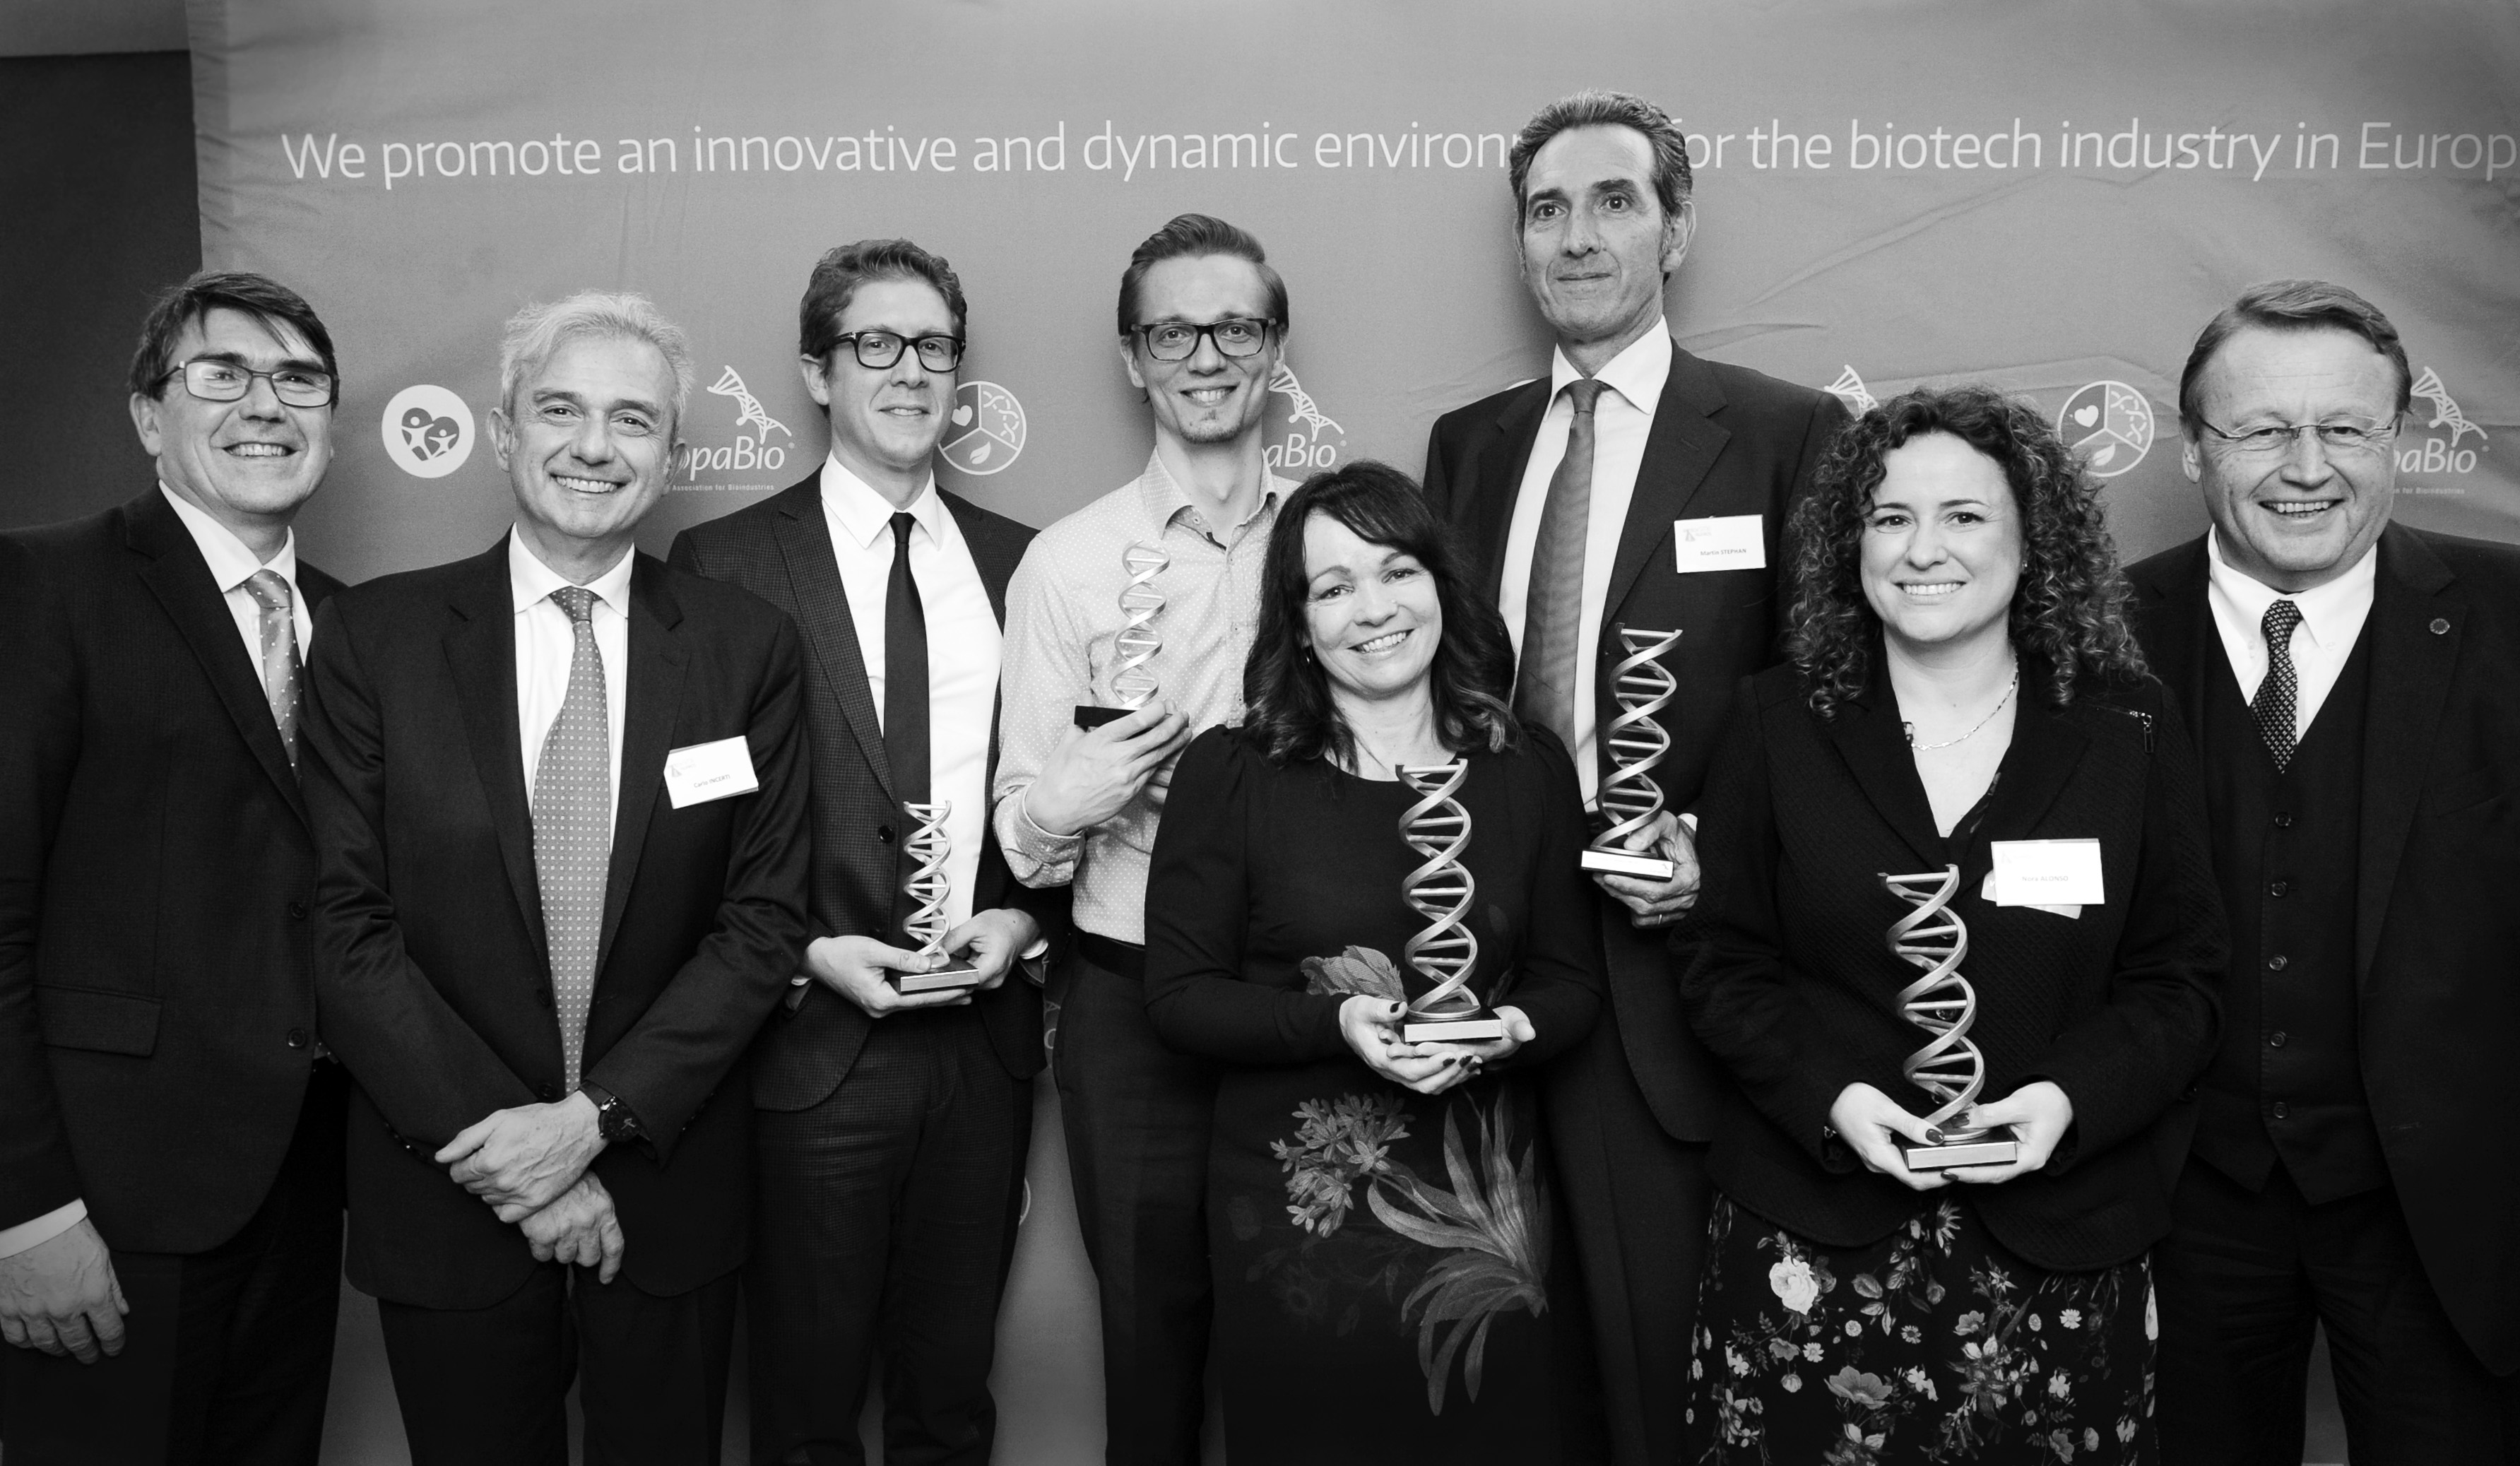 Nightingale awarded as one of the most innovative biotech SMEs in Europe